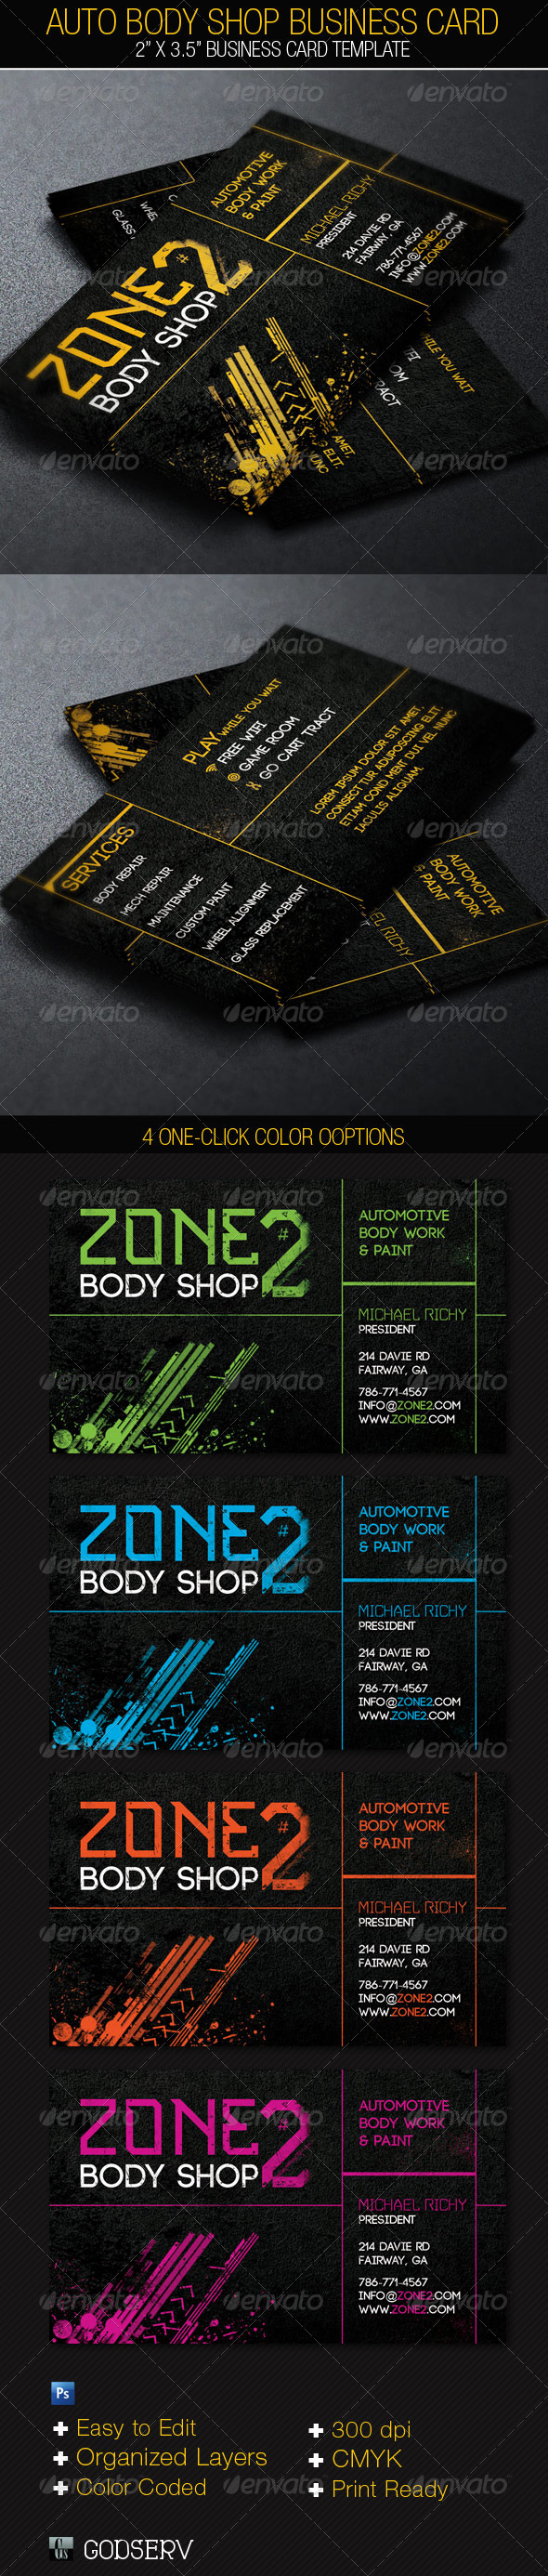 GraphicRiver Auto Body Shop Business Card Template 4865877